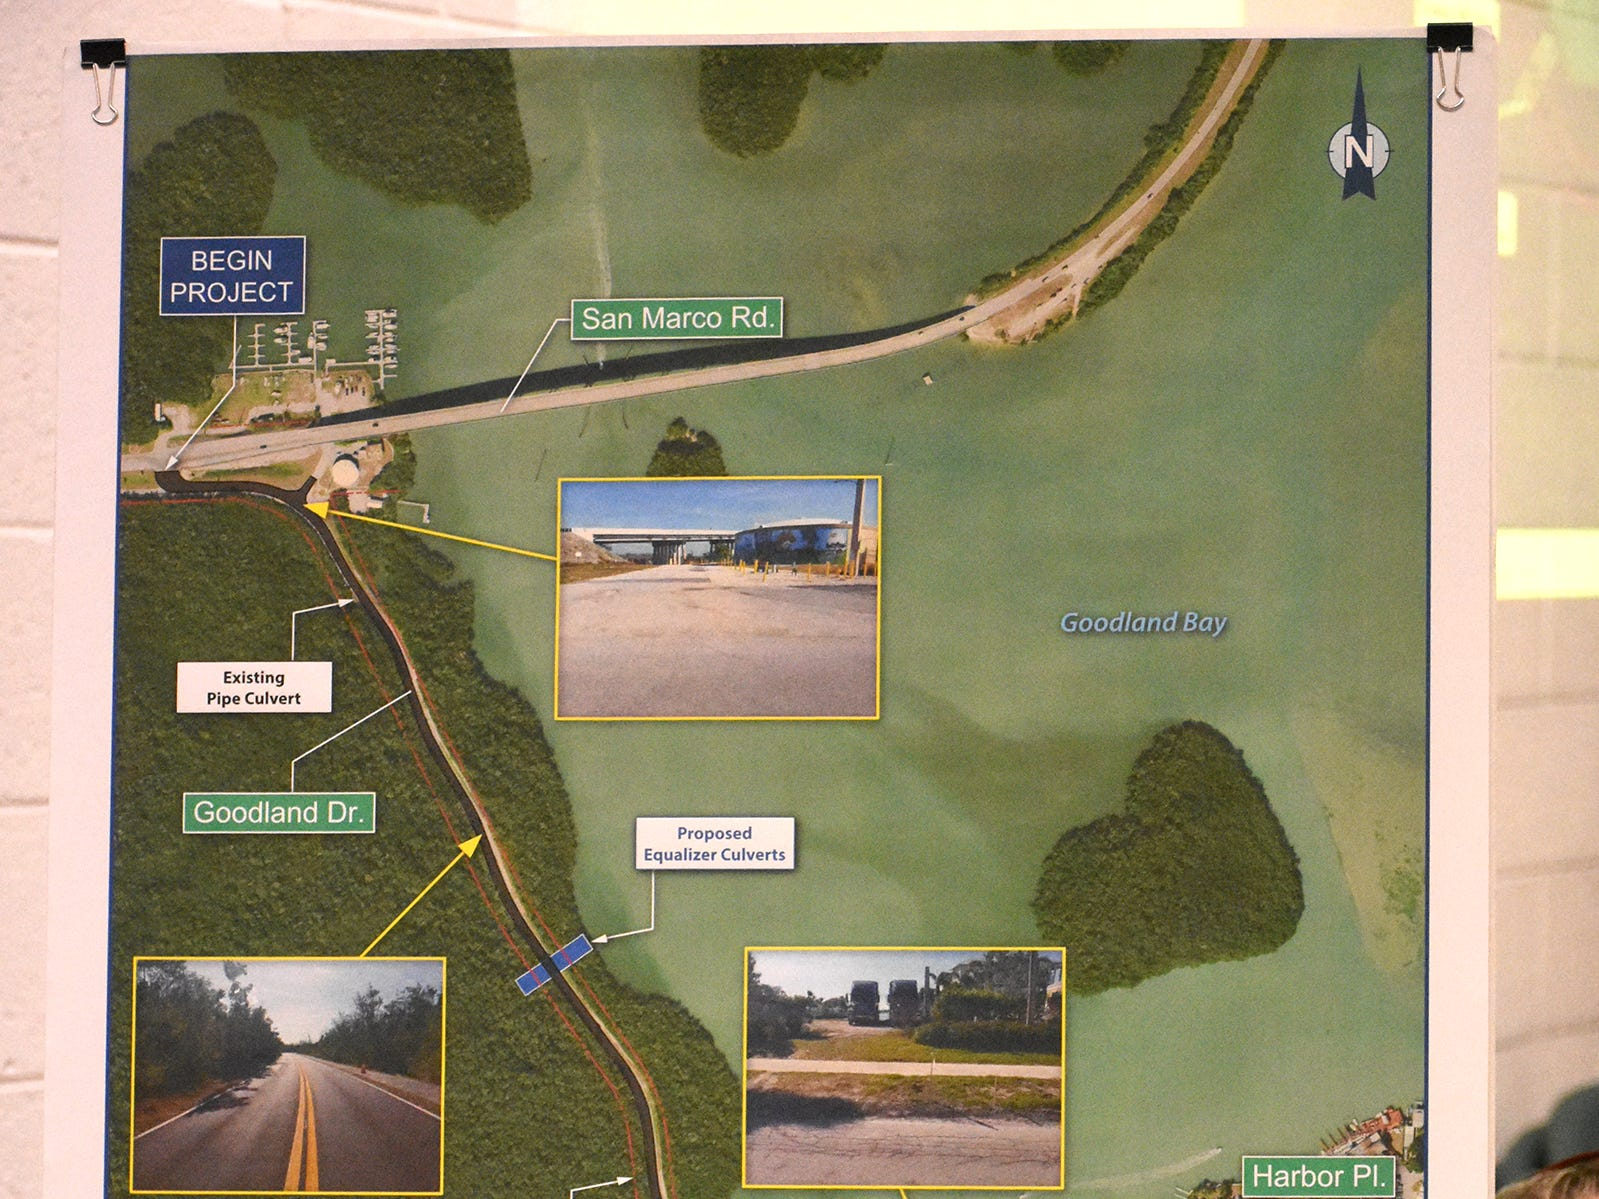 A display lays out the scope of the project. County planners held a public information meeting at the Goodland Community Center on Thursday evening, to go over plans and solicit resident input on the upcoming work to improve Goodland Drive.